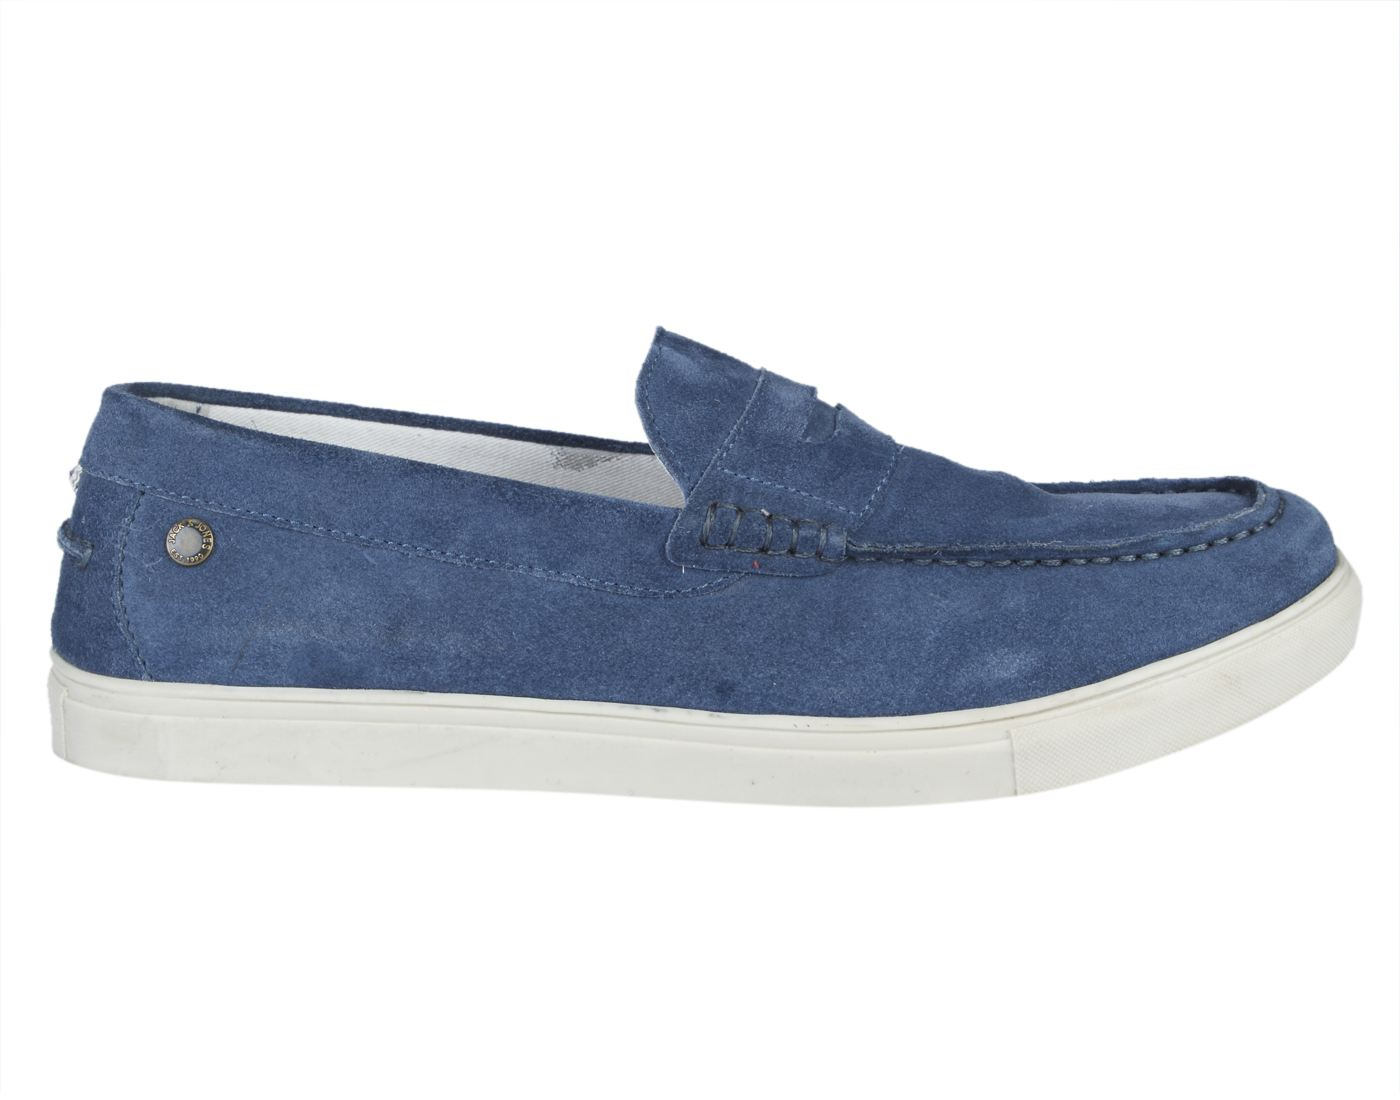 Jack & Jones Flint Stone Leather (TPR Sole) Slip-On Sneakers